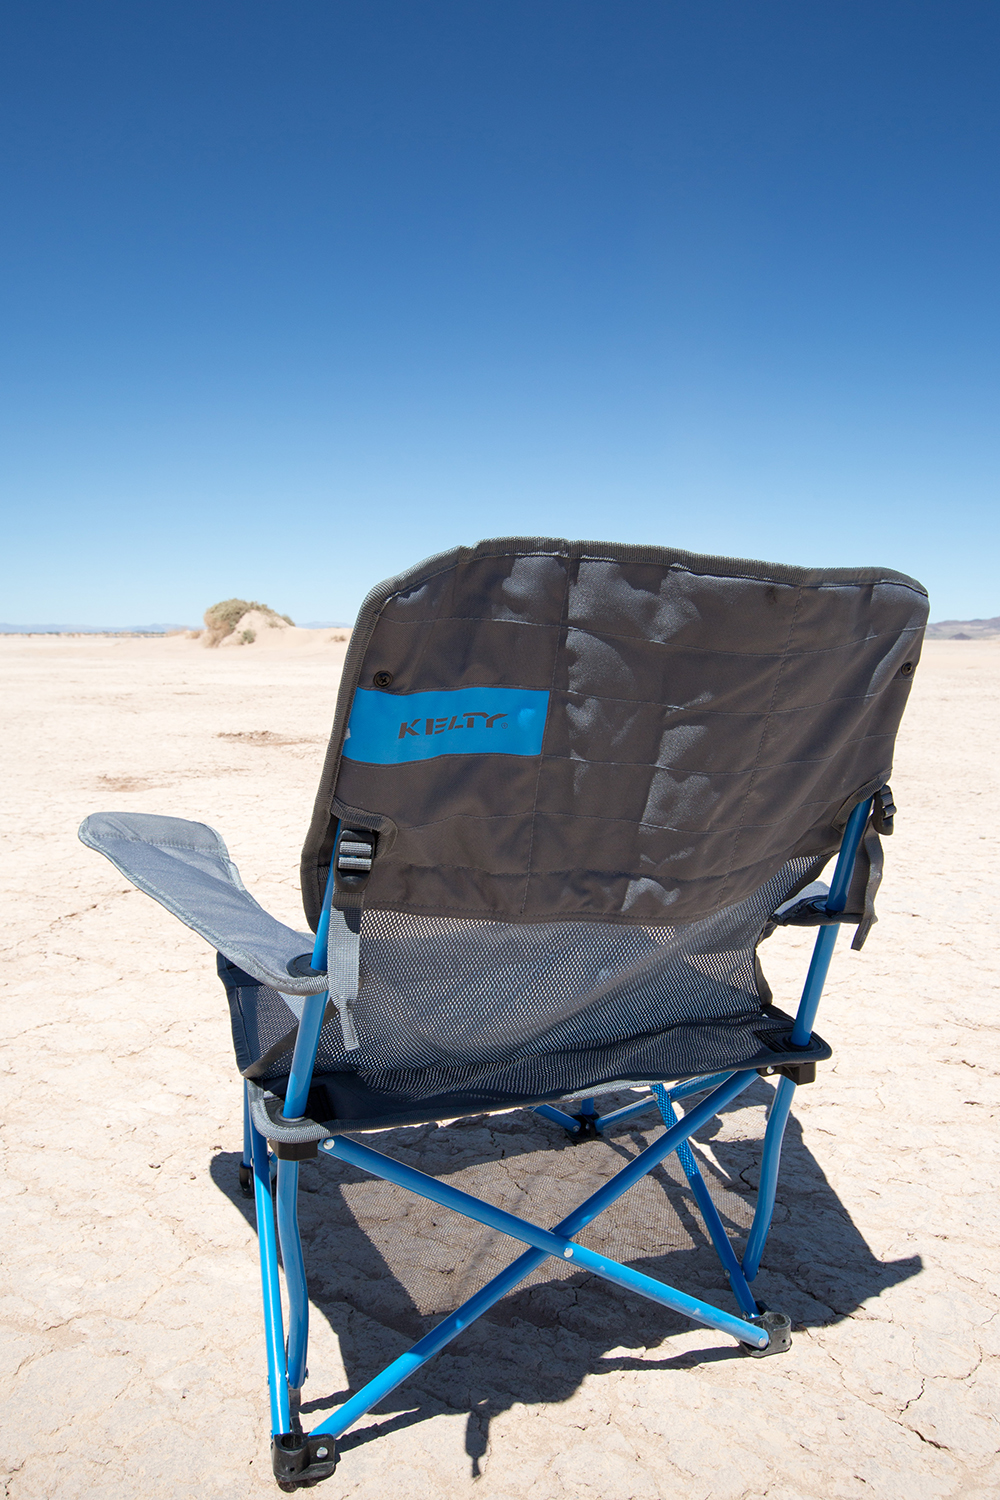 Kelty Low Down and Shade Shelter Review